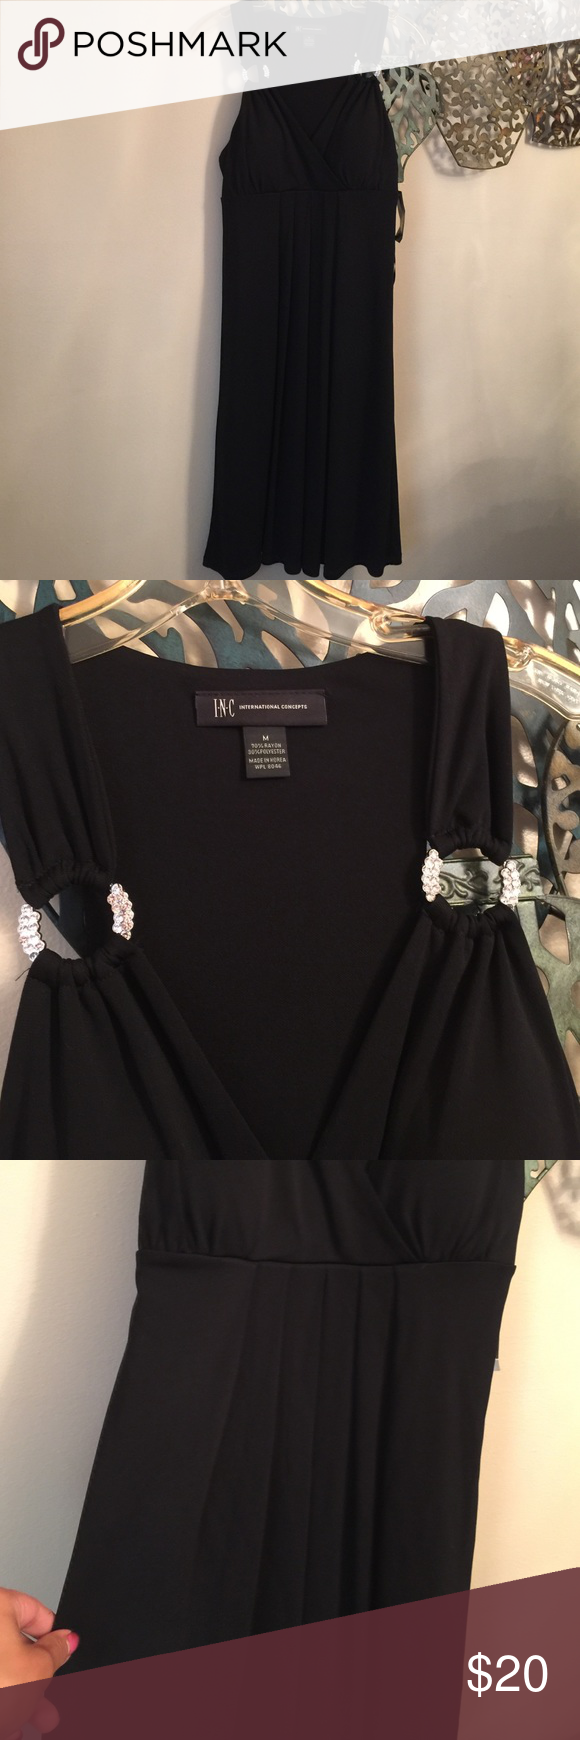 INC new black dress Beautiful padded bra v neck with two diamond rings on shoulder light pleated front retail 80$ INC International Concepts Dresses Midi